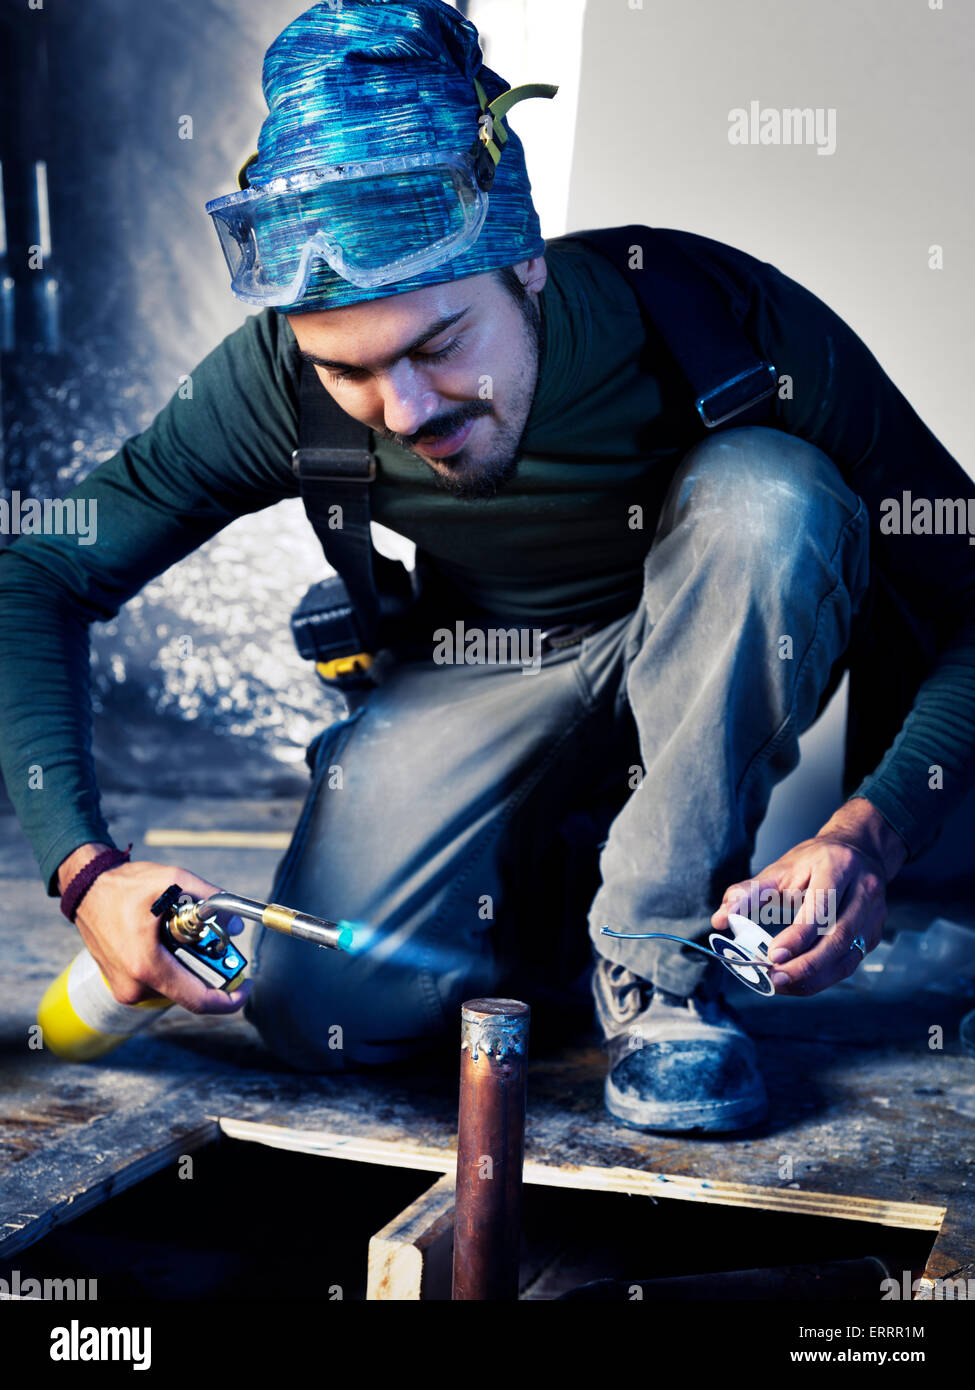 Portrait of man contractor worker with a blow torch capping a pipe doing plumbing - Stock Image